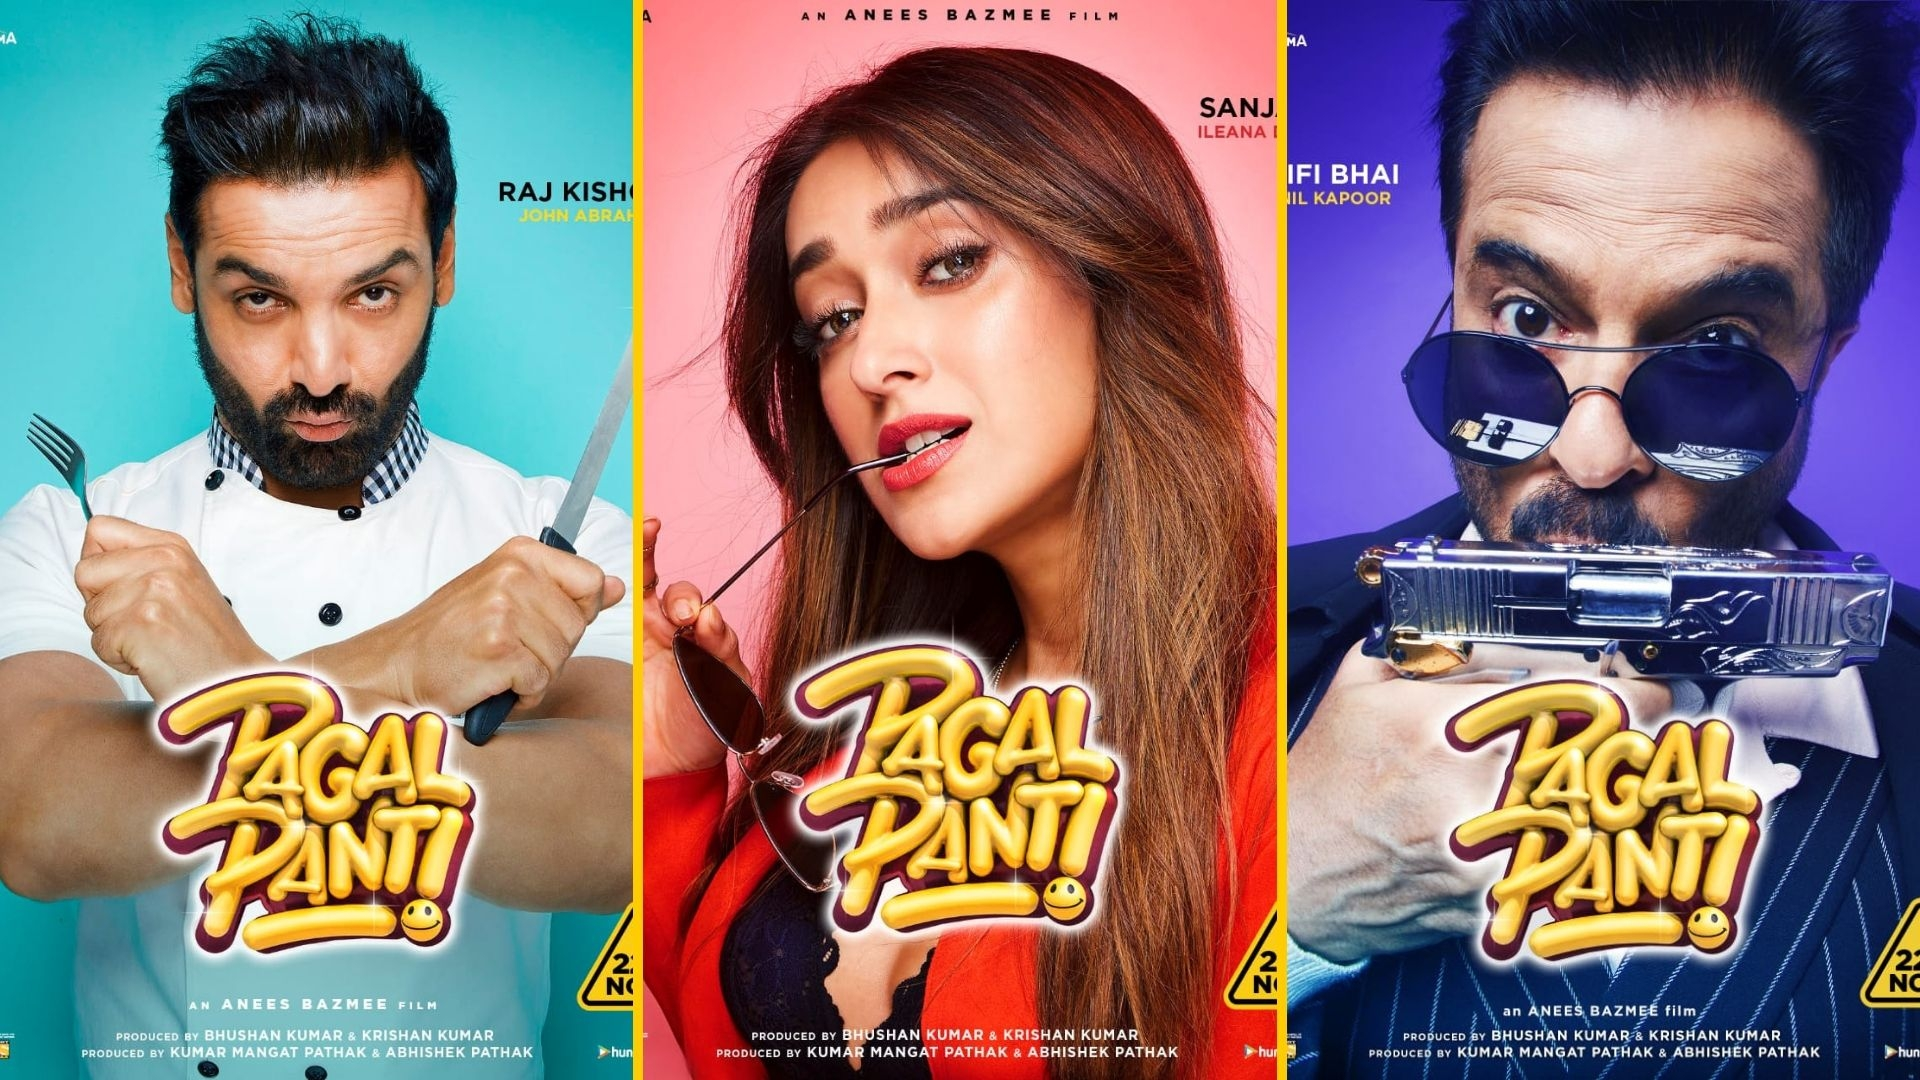 John, Ileana & Gang Go Crazy in 'Pagalpanti' Character Posters